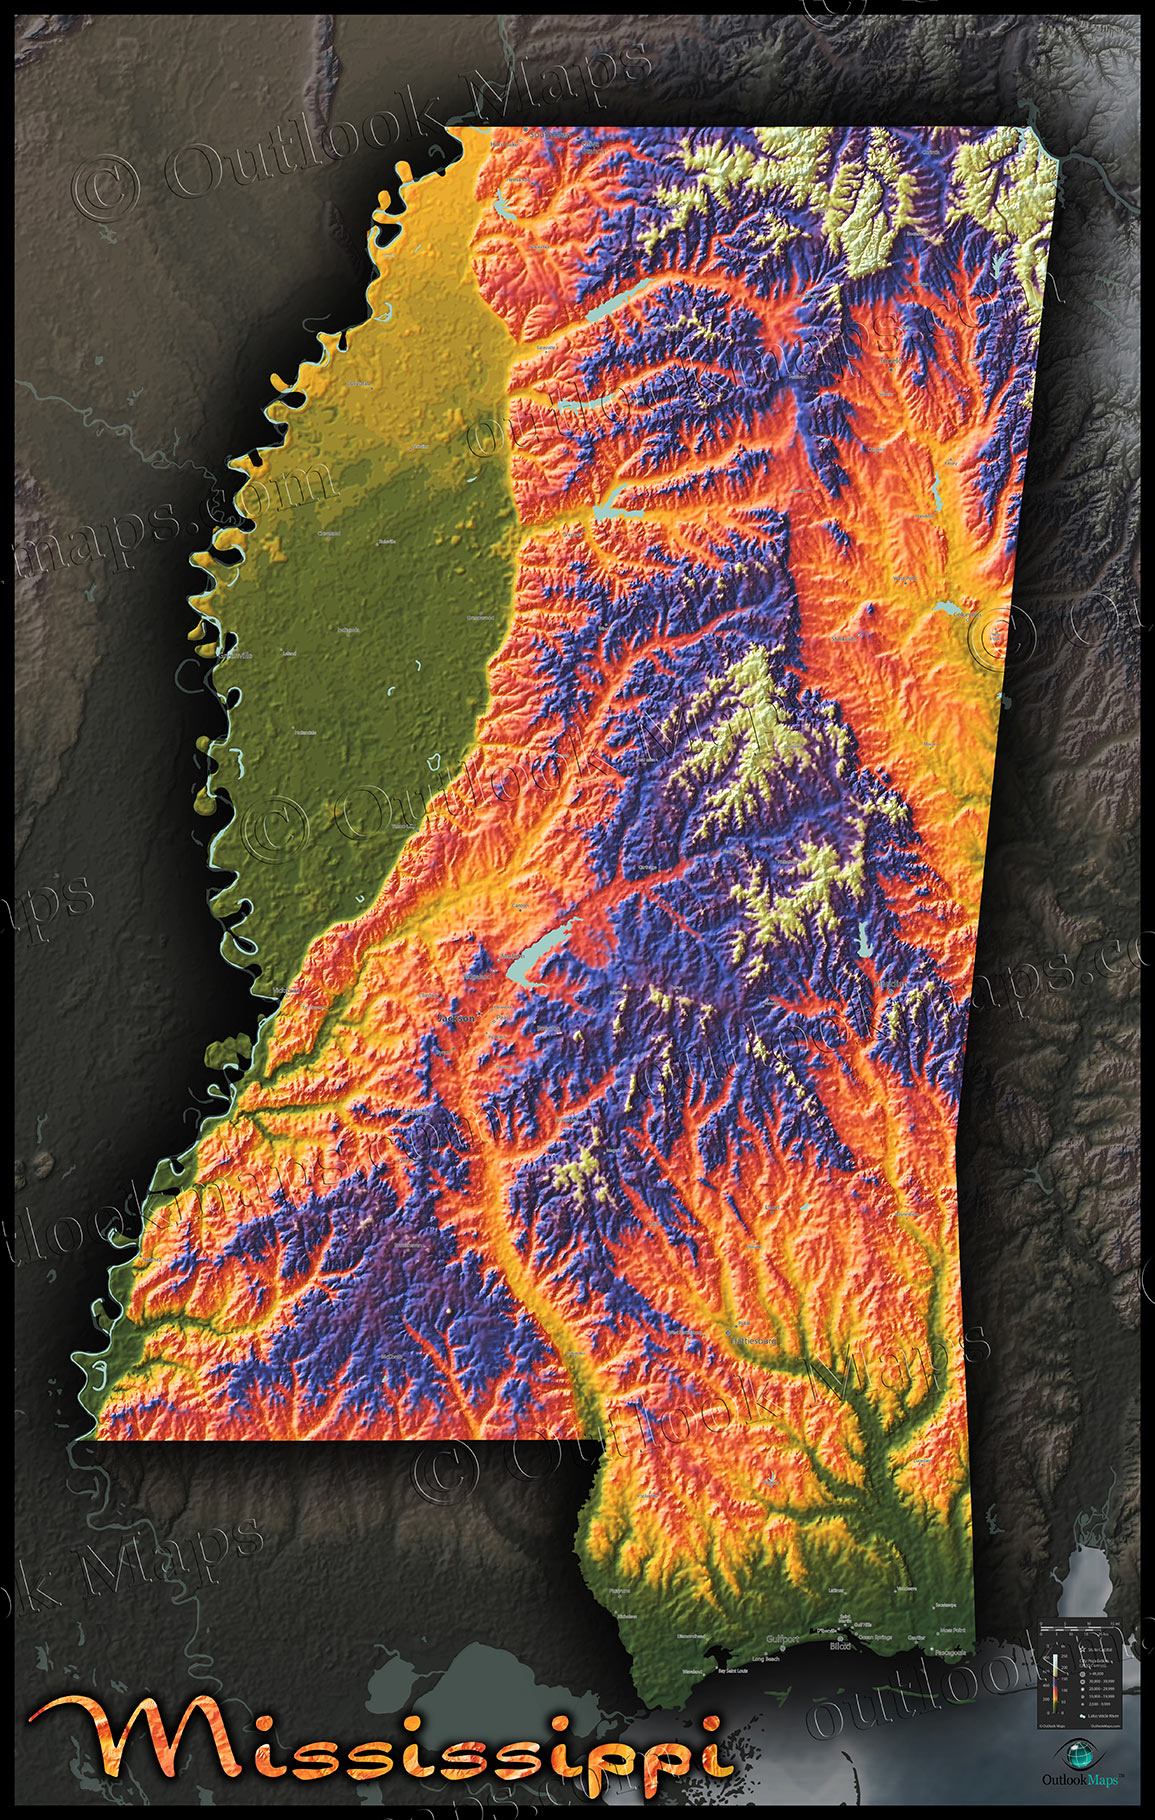 Mississippi Wall Map Colorful Artistic Topographic Style - Maps mississippi